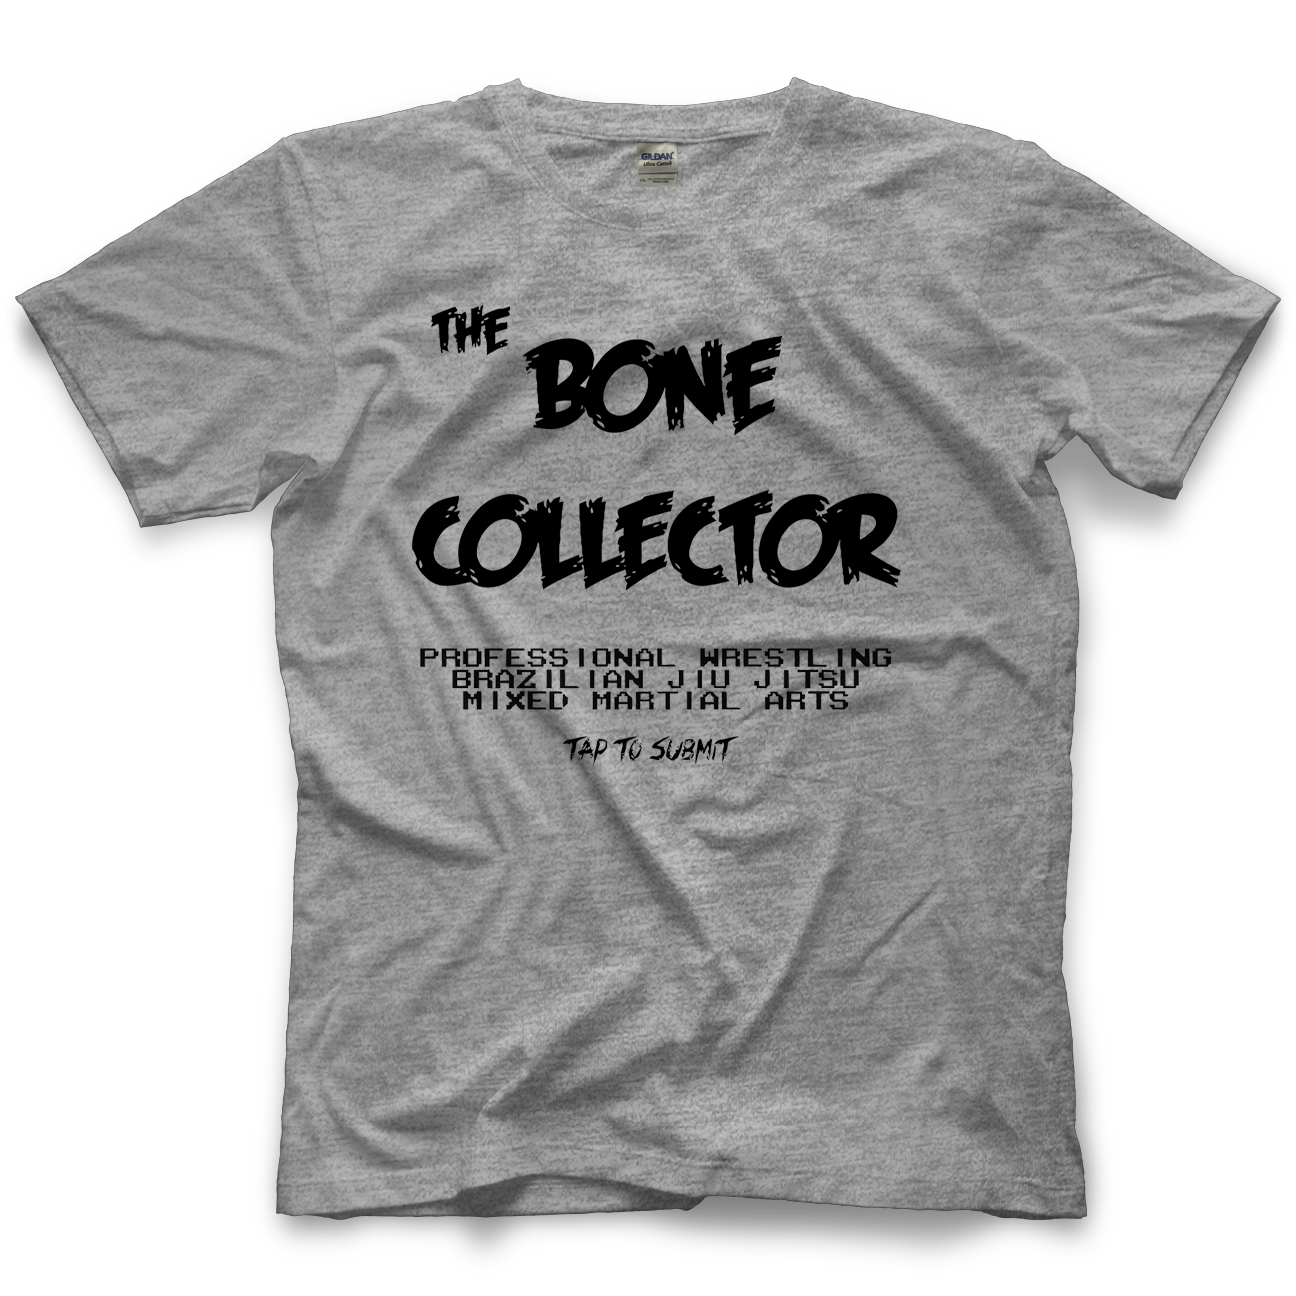 Bone Collector T-shirt